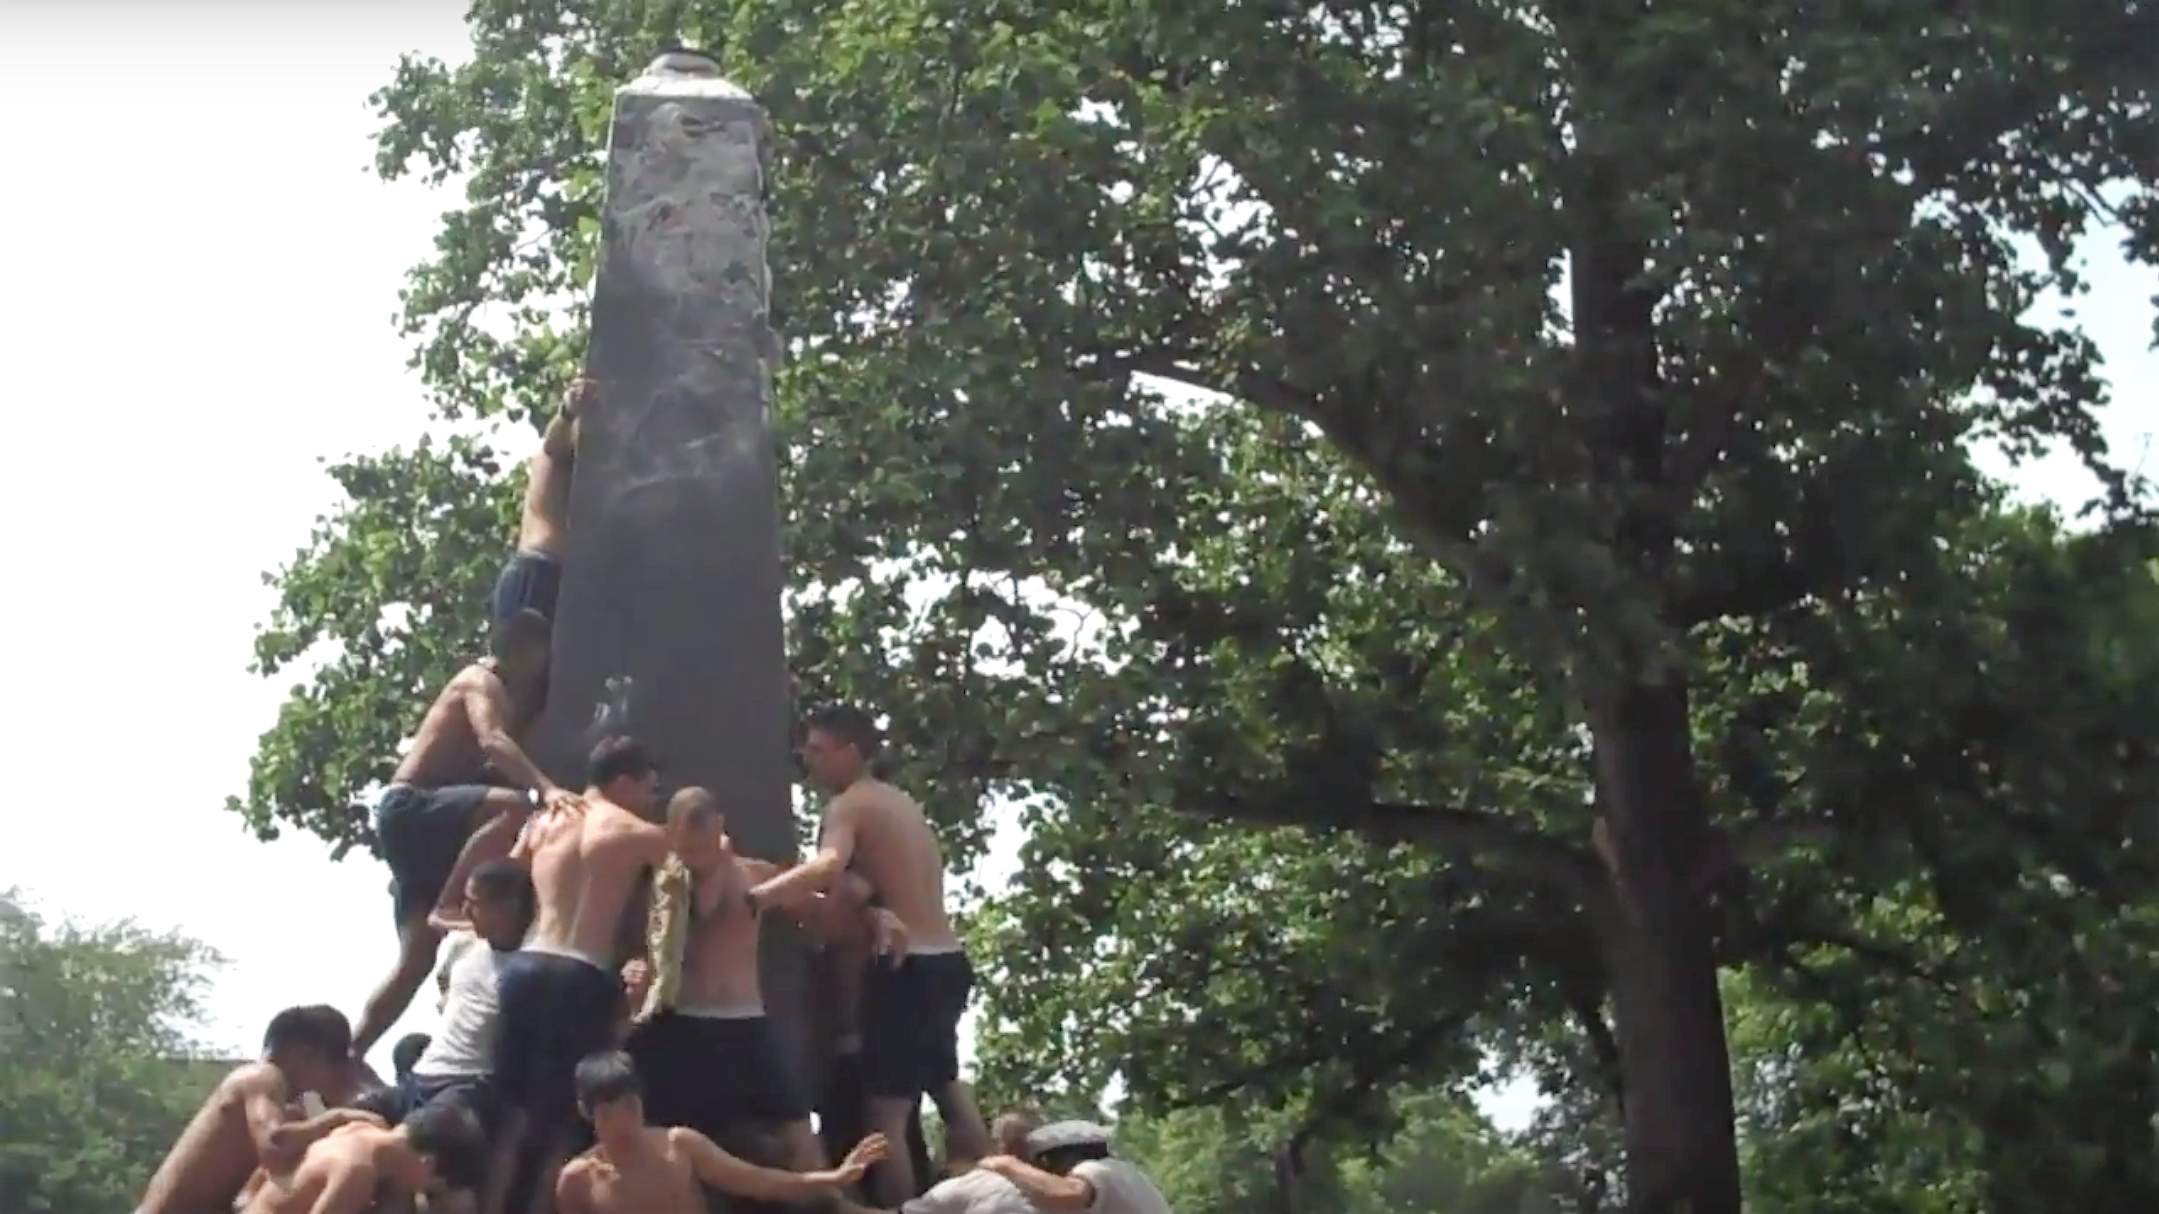 Shirtless Plebes Climb A Greasy Pole In Naval Academy's Annual Herndon Climb